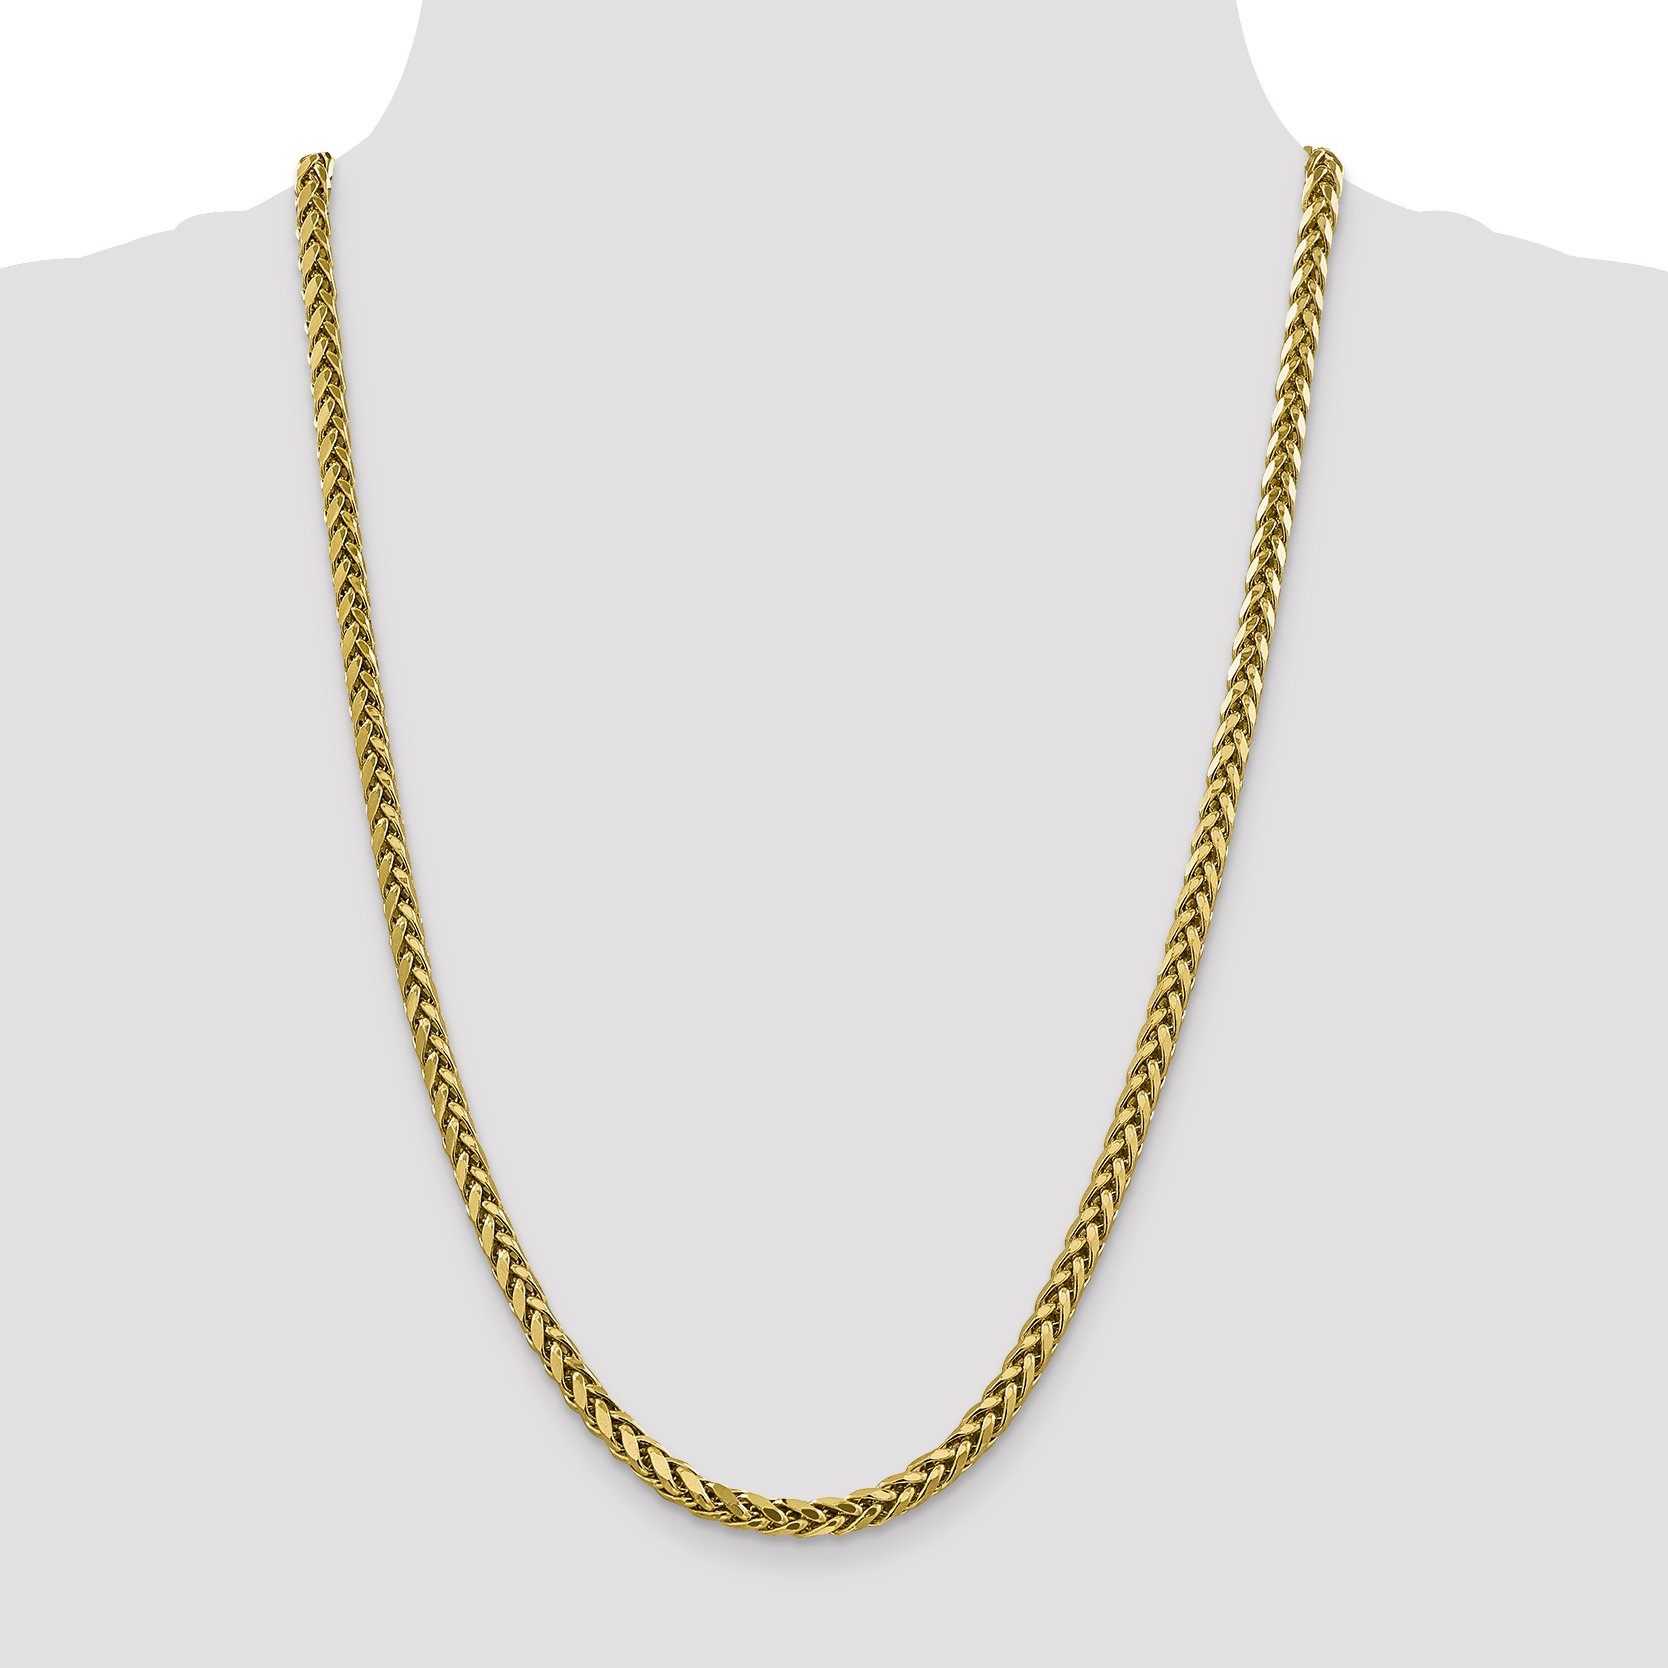 ICE CARATS 14k Yellow Gold 5mm Link Wheat Chain Necklace 18 Inch Spiga Oval Fine Jewelry Gift Set For Women Heart by ICE CARATS (Image #2)